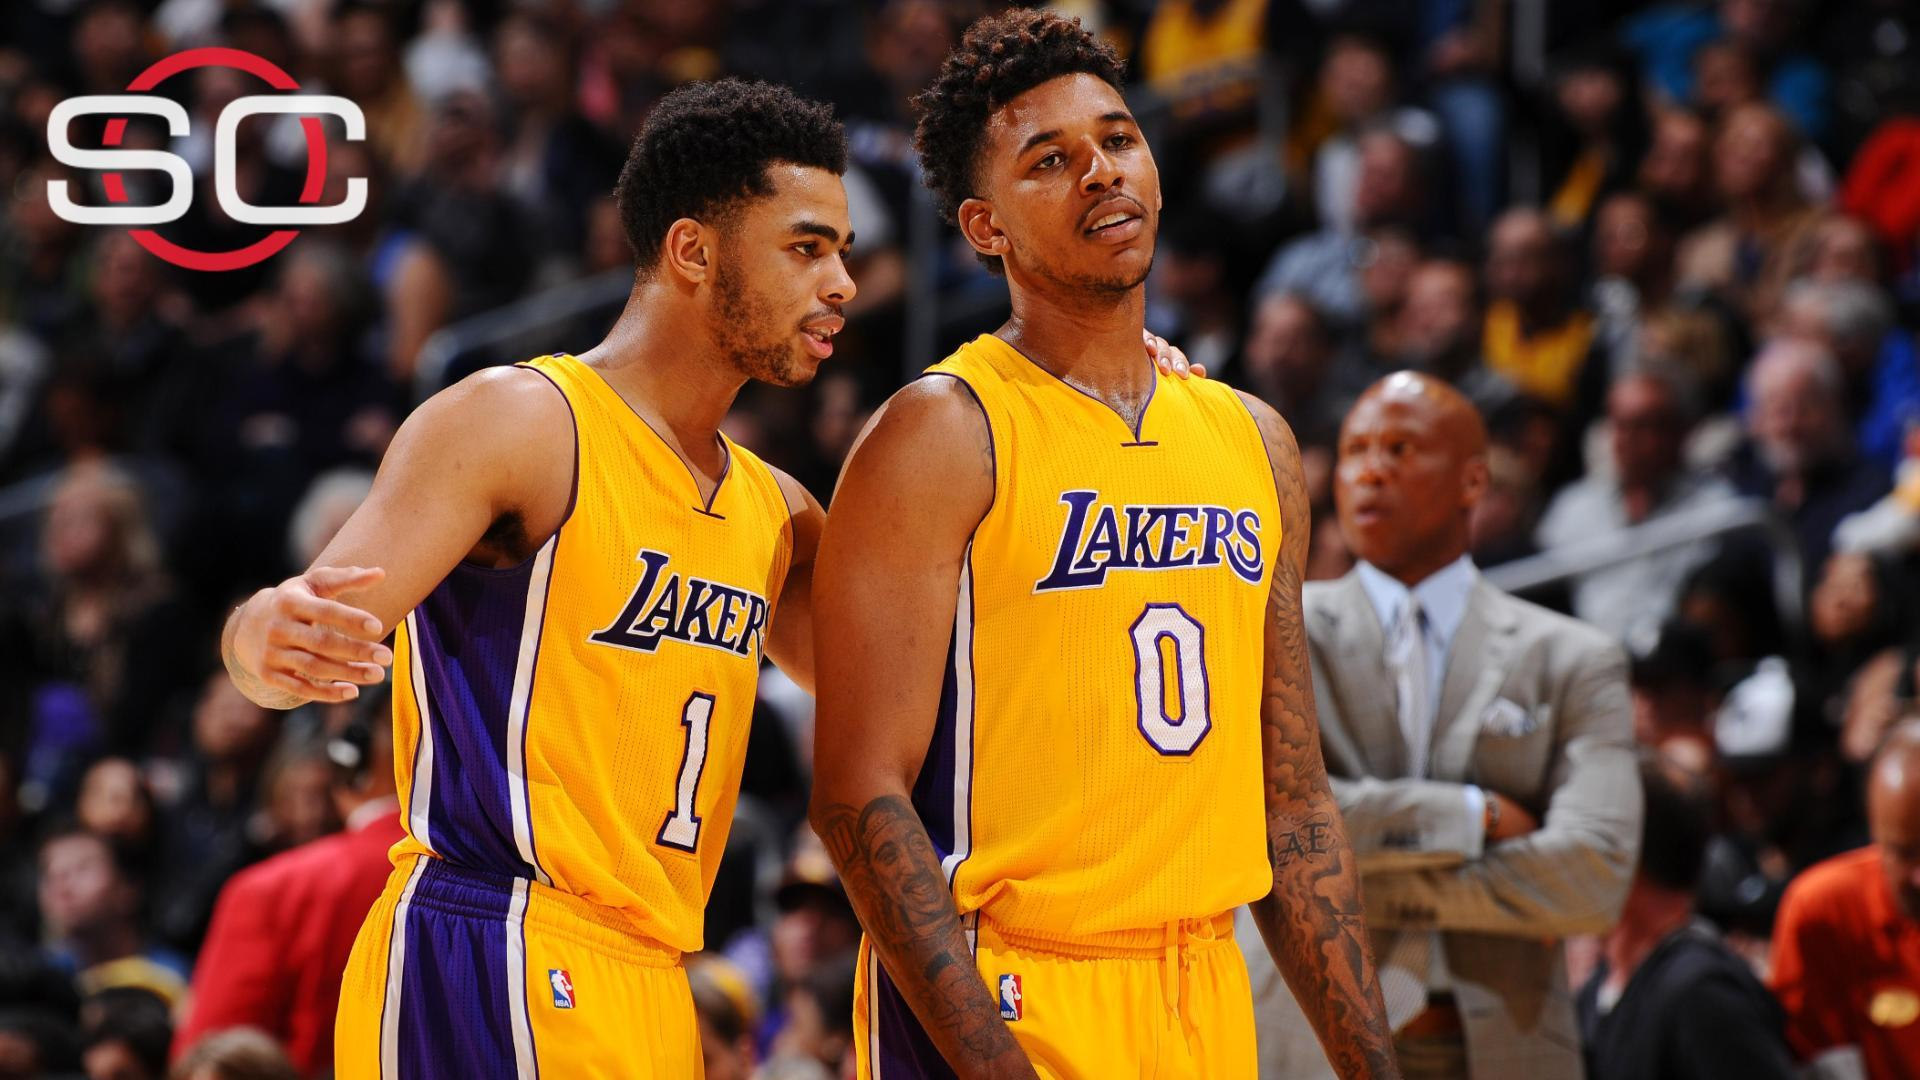 Former pros stunned at D'Angelo Russell's disregard for locker